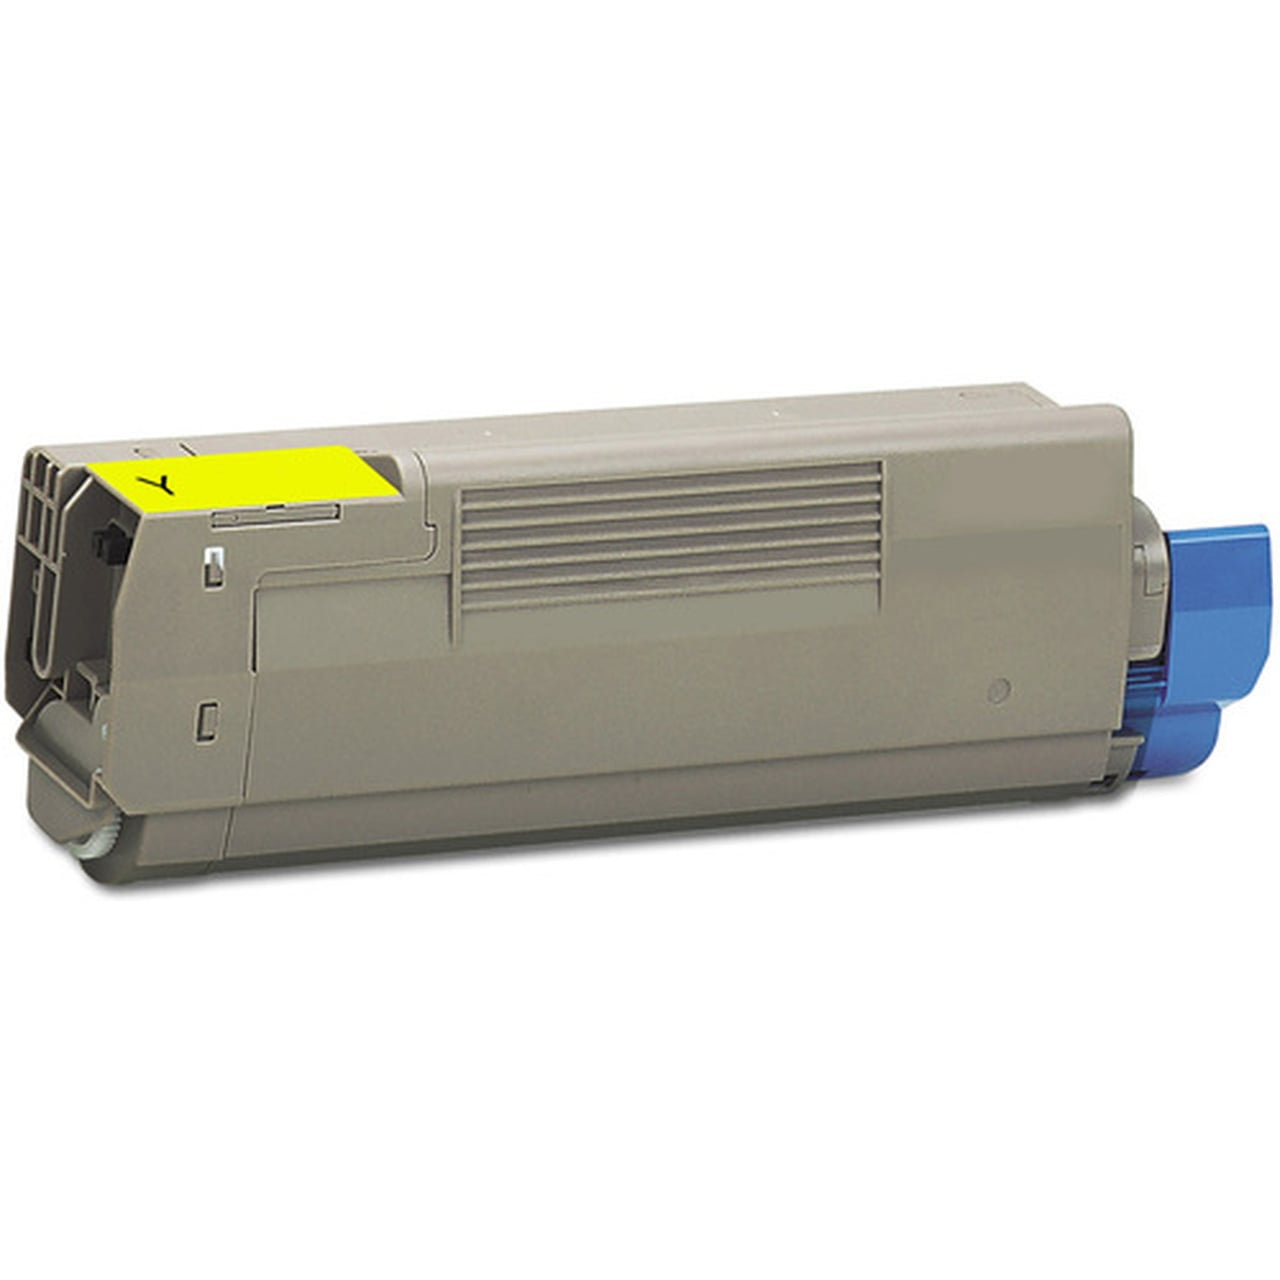 44844509 Toner Cartridge - Okidata Remanufactured (Yellow)